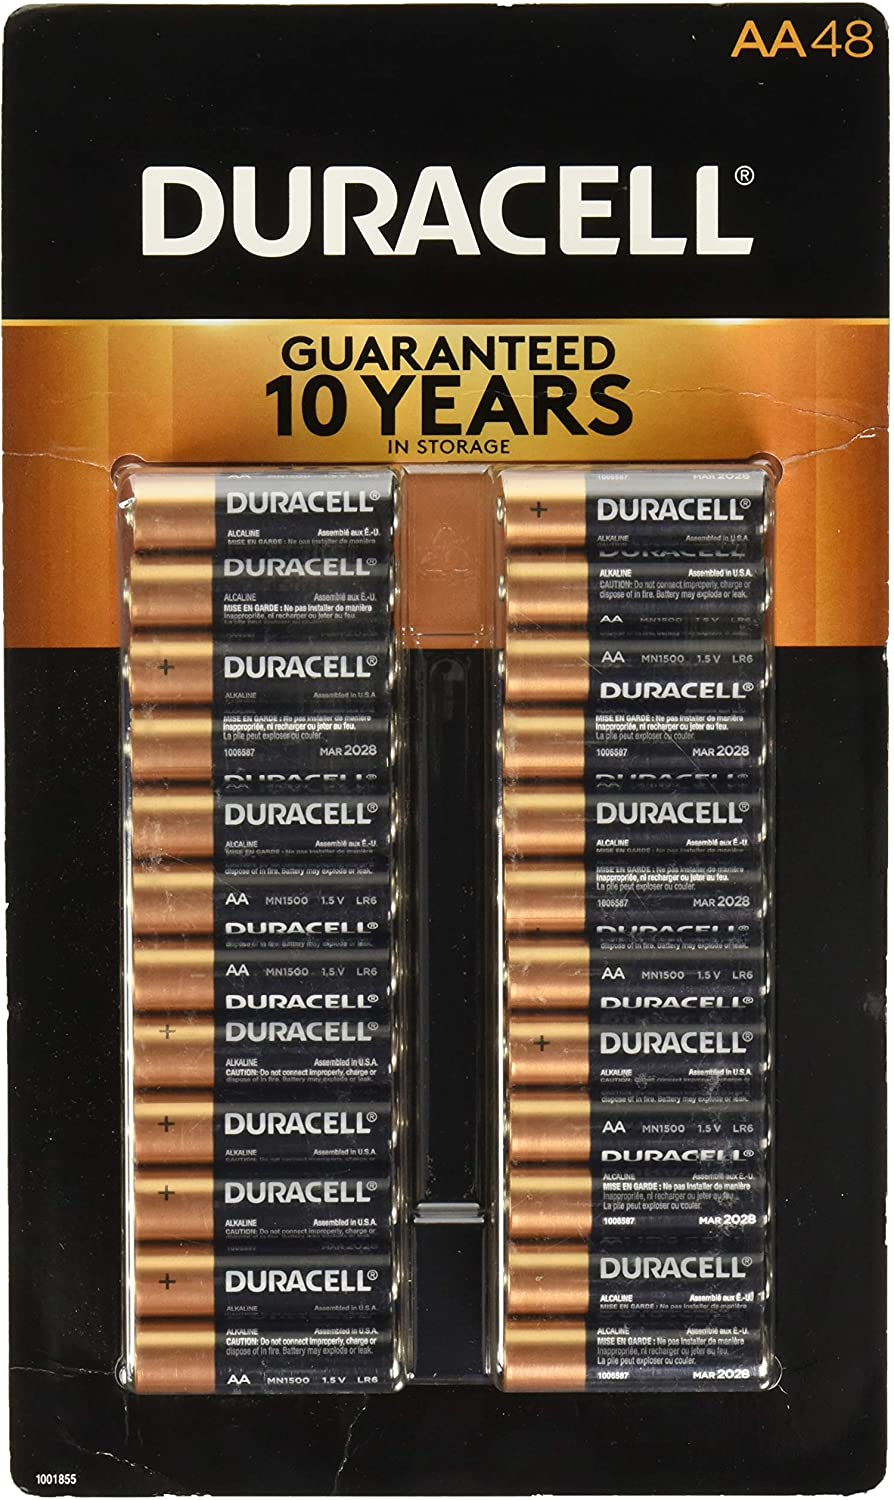 Duracell Coppertop Alkaline-Manganese Chicago Award Mall Dioxide 1.5V AA Battery